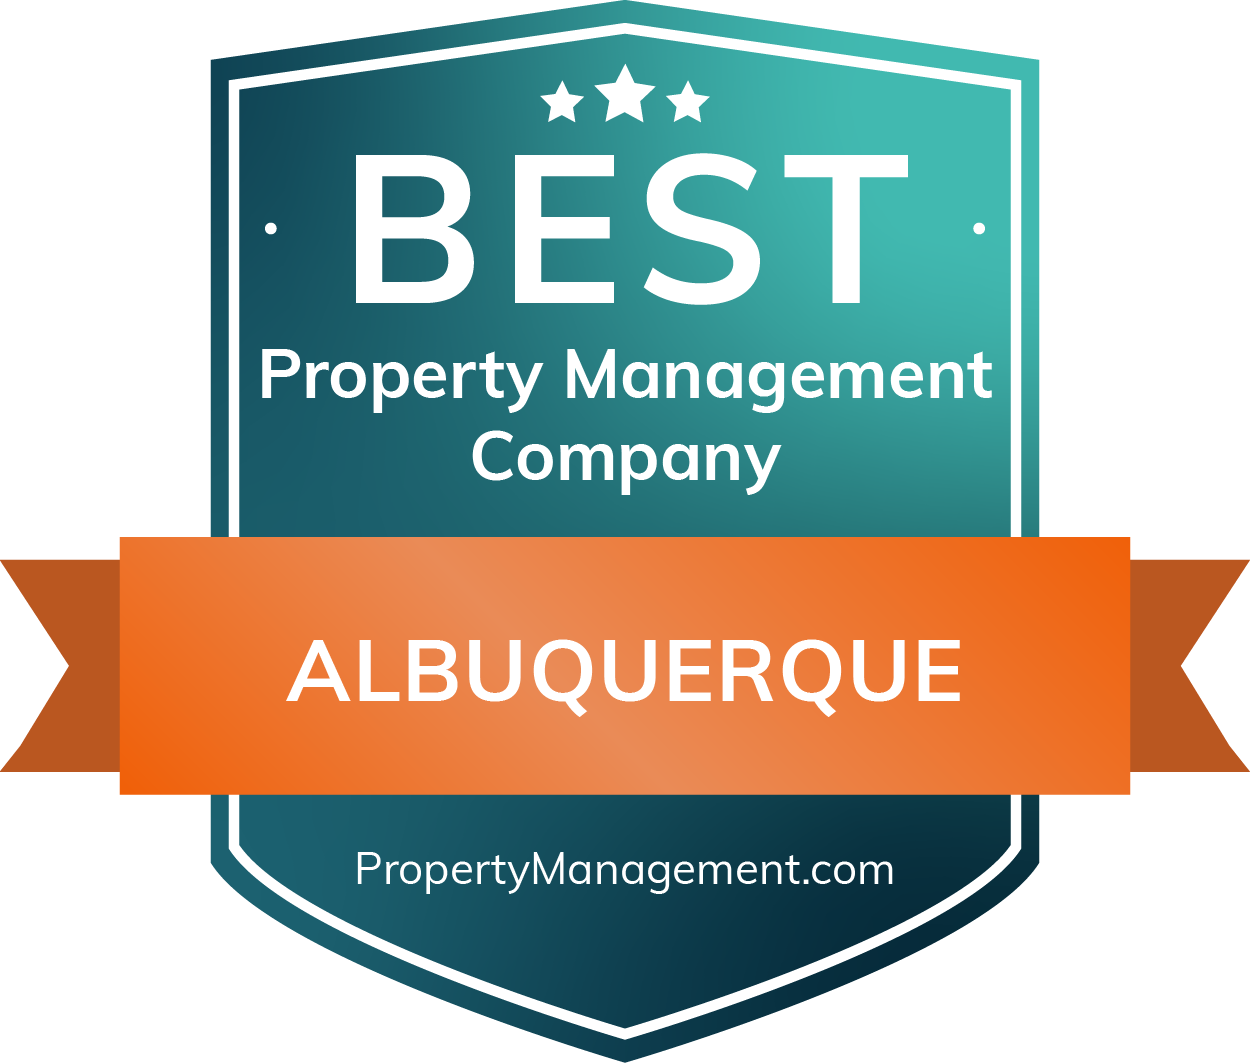 The Best Property Management in Albuquerque, NM